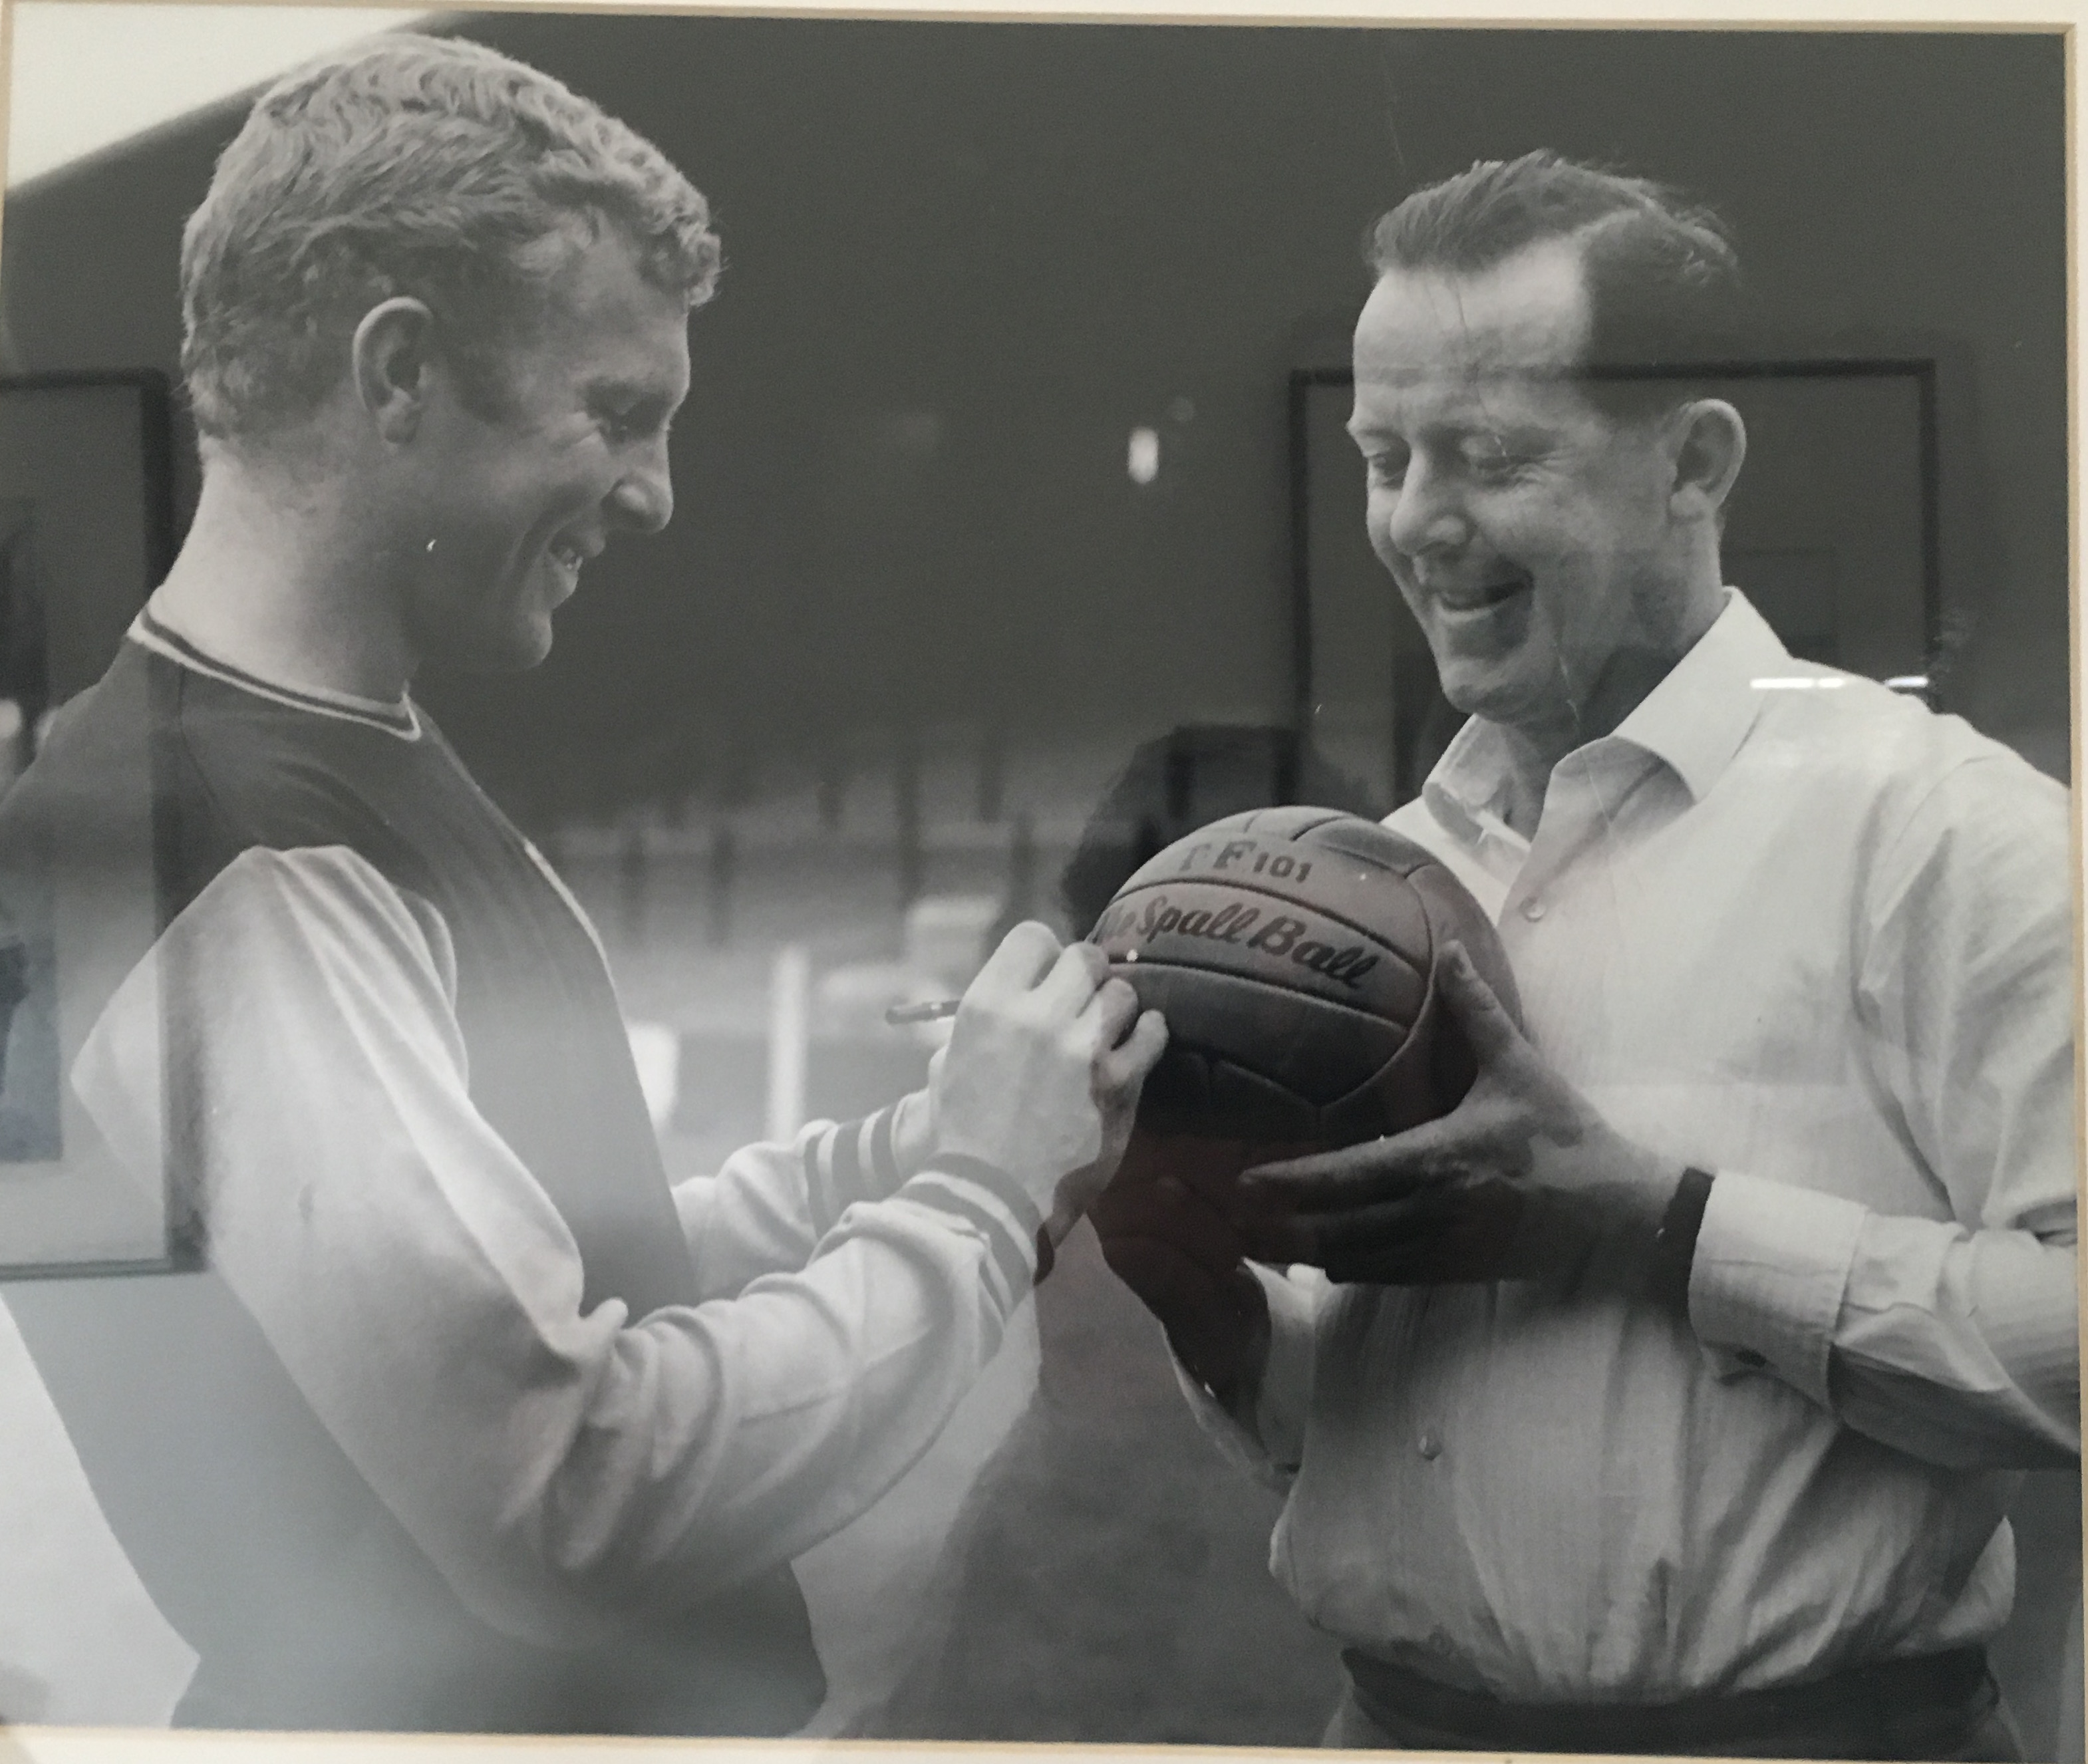 Bobby Moore England captain at the 1966 worldcup win endorsing Spall